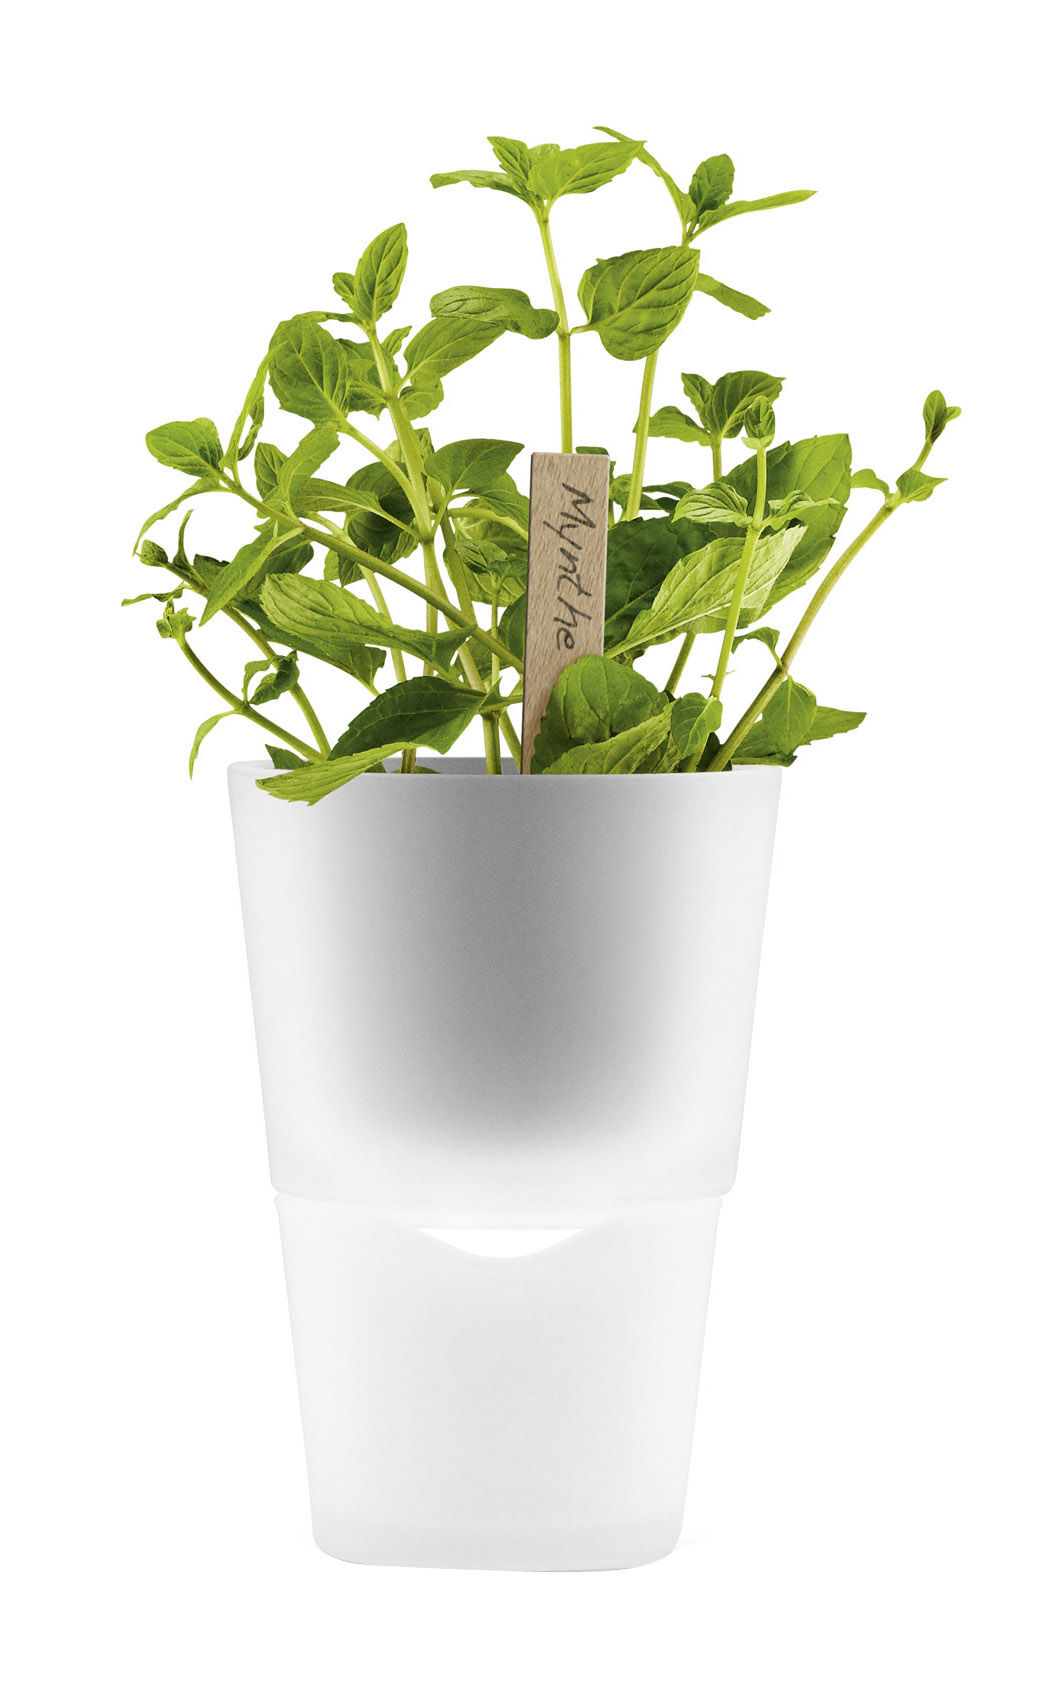 Outdoor - Pots & Plants - Flowerpot - with water tank - Ø 11 cm - Glass by Eva Solo - Frosted glass - Glass, Plastic